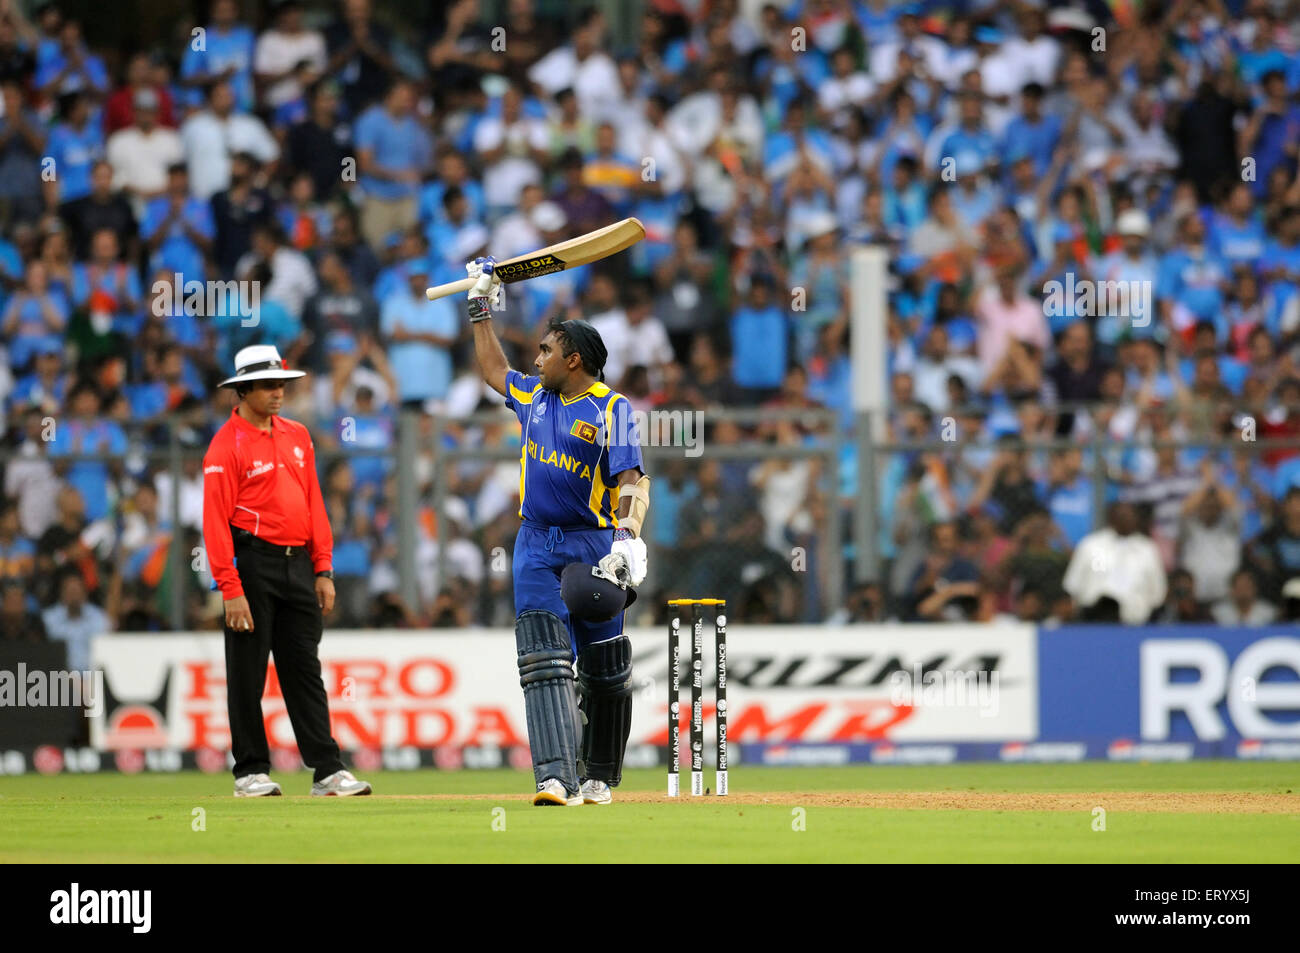 Sri Lankan batsman Mahela Jaywerdena celebrates reaching century ICC Cricket World Cup finals Wankhede stadium Mumbai - Stock Image